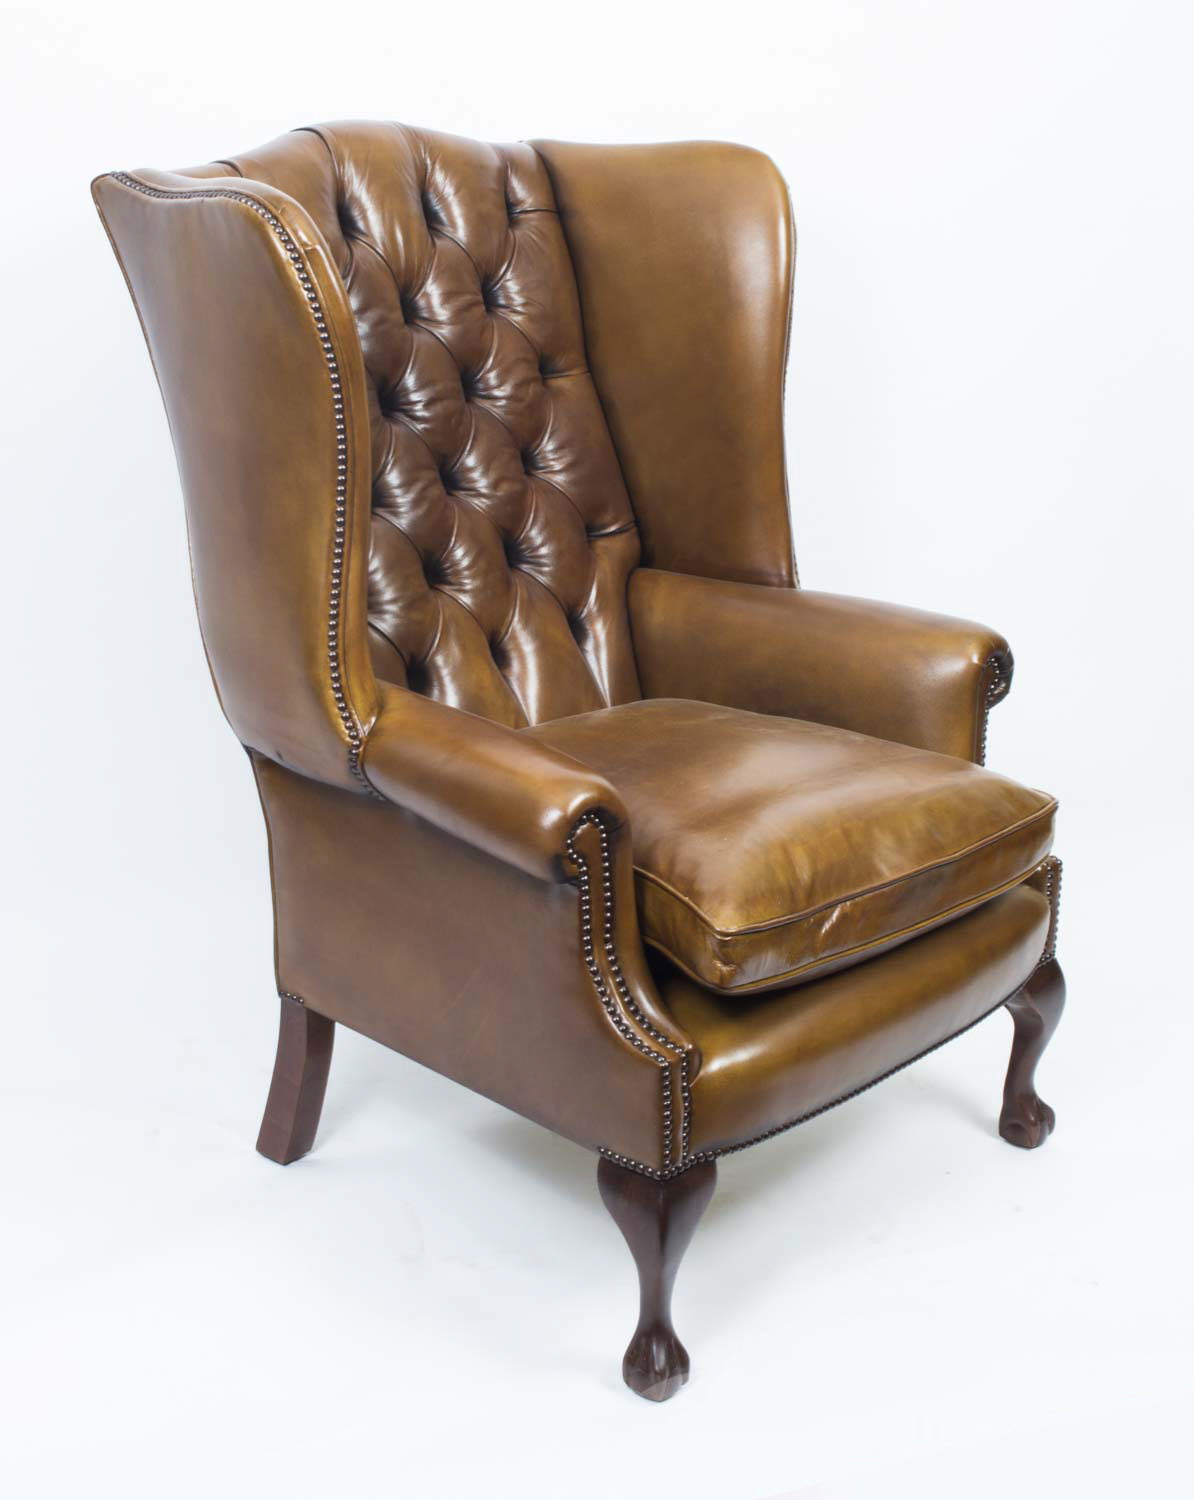 06566d Leather Chippendale Wing Back Chair Armchair Yellow Tan on hand painted chairs